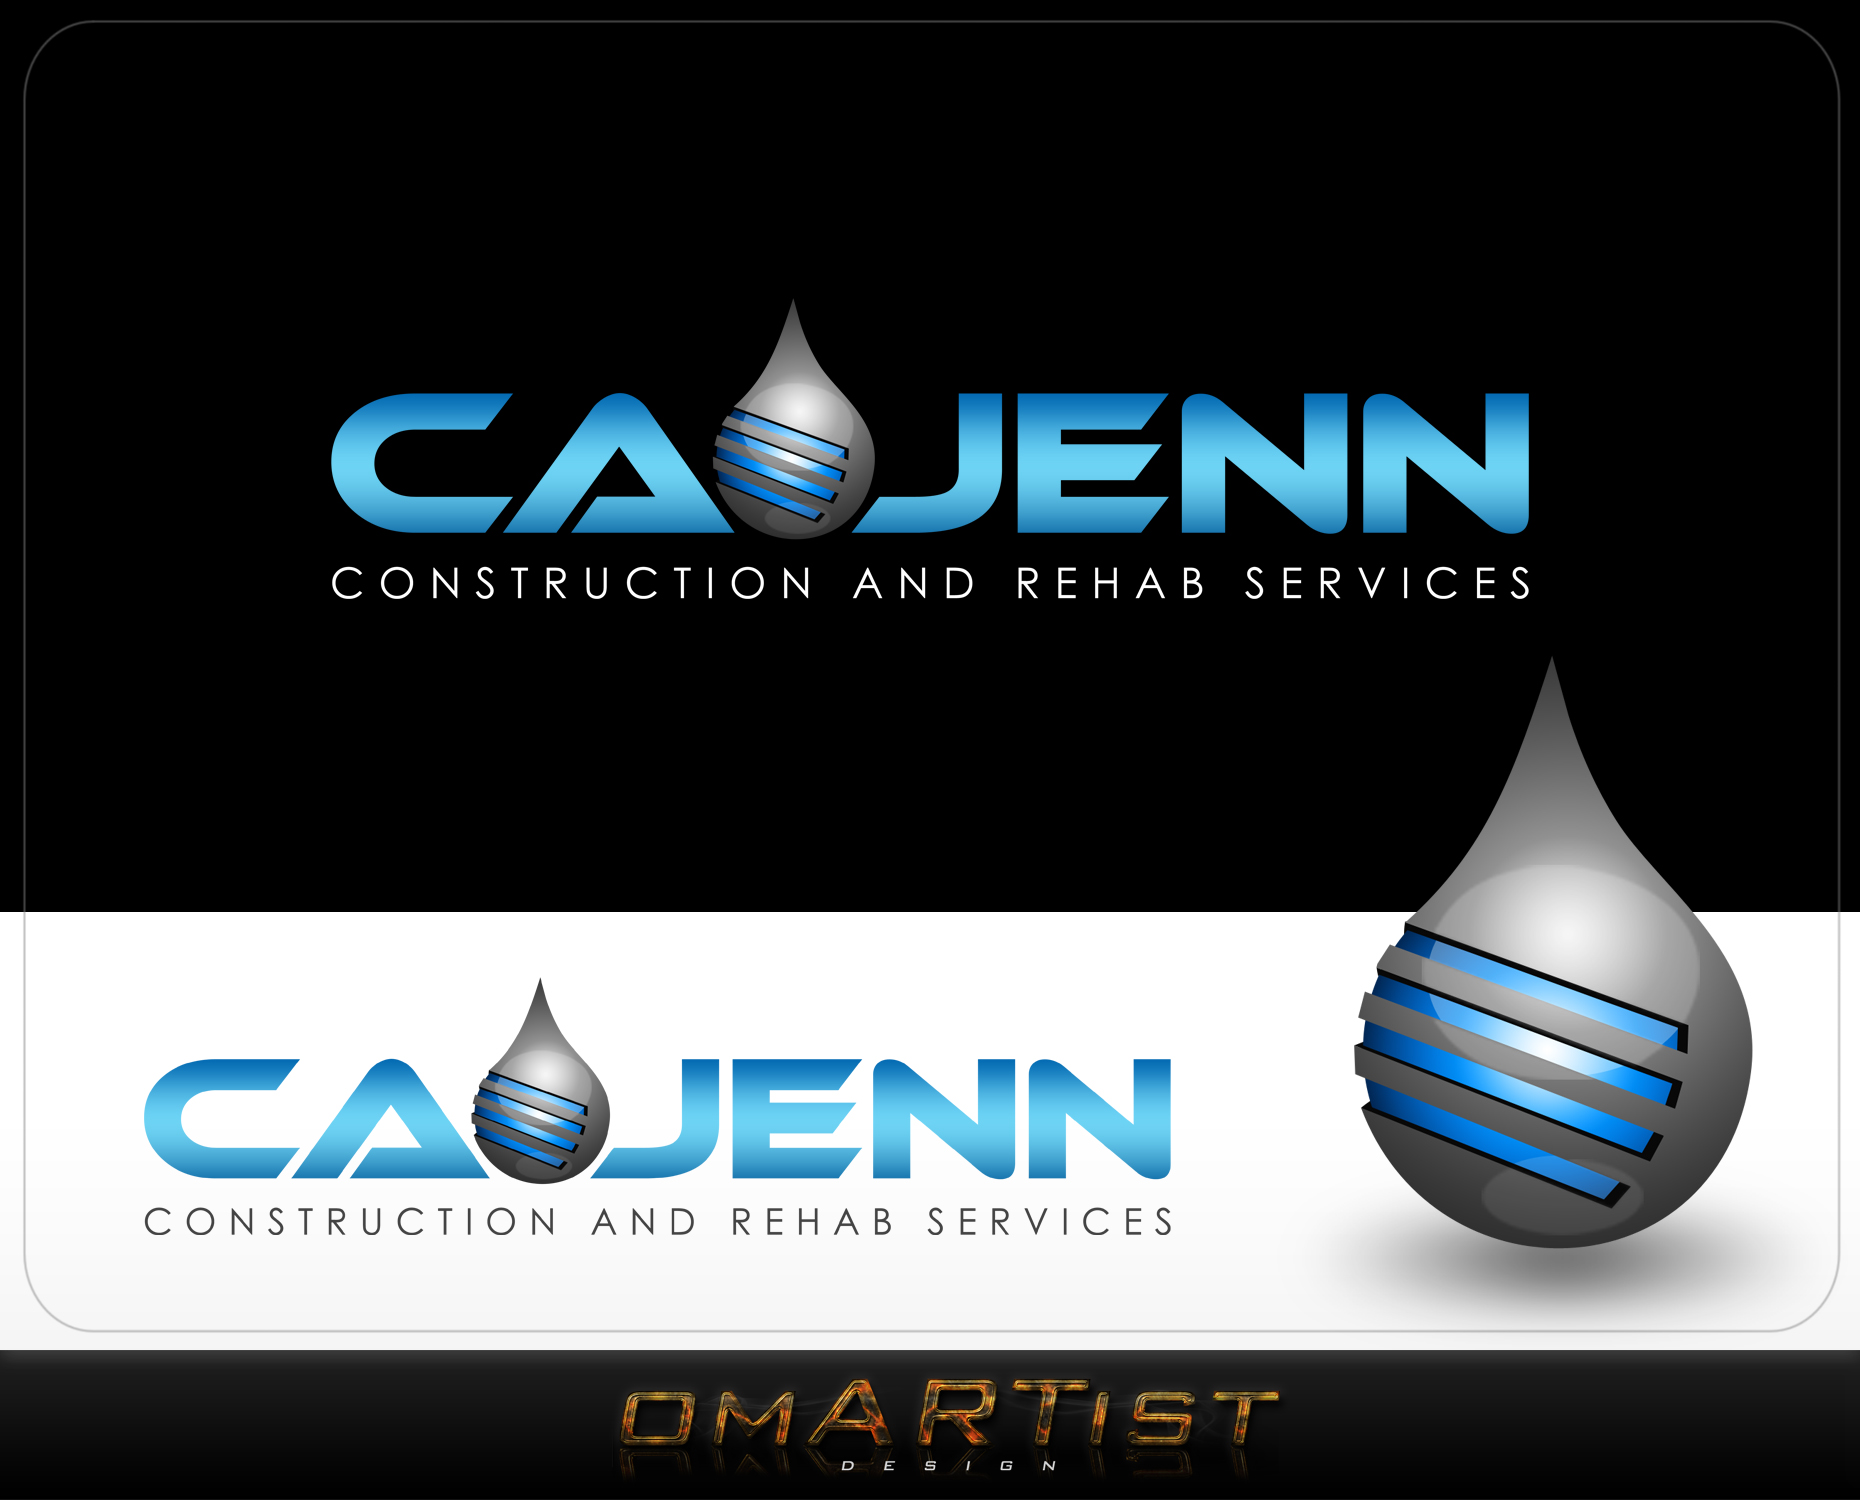 Logo Design by omARTist - Entry No. 65 in the Logo Design Contest New Logo Design for CaJenn Construction & Rehab Services.